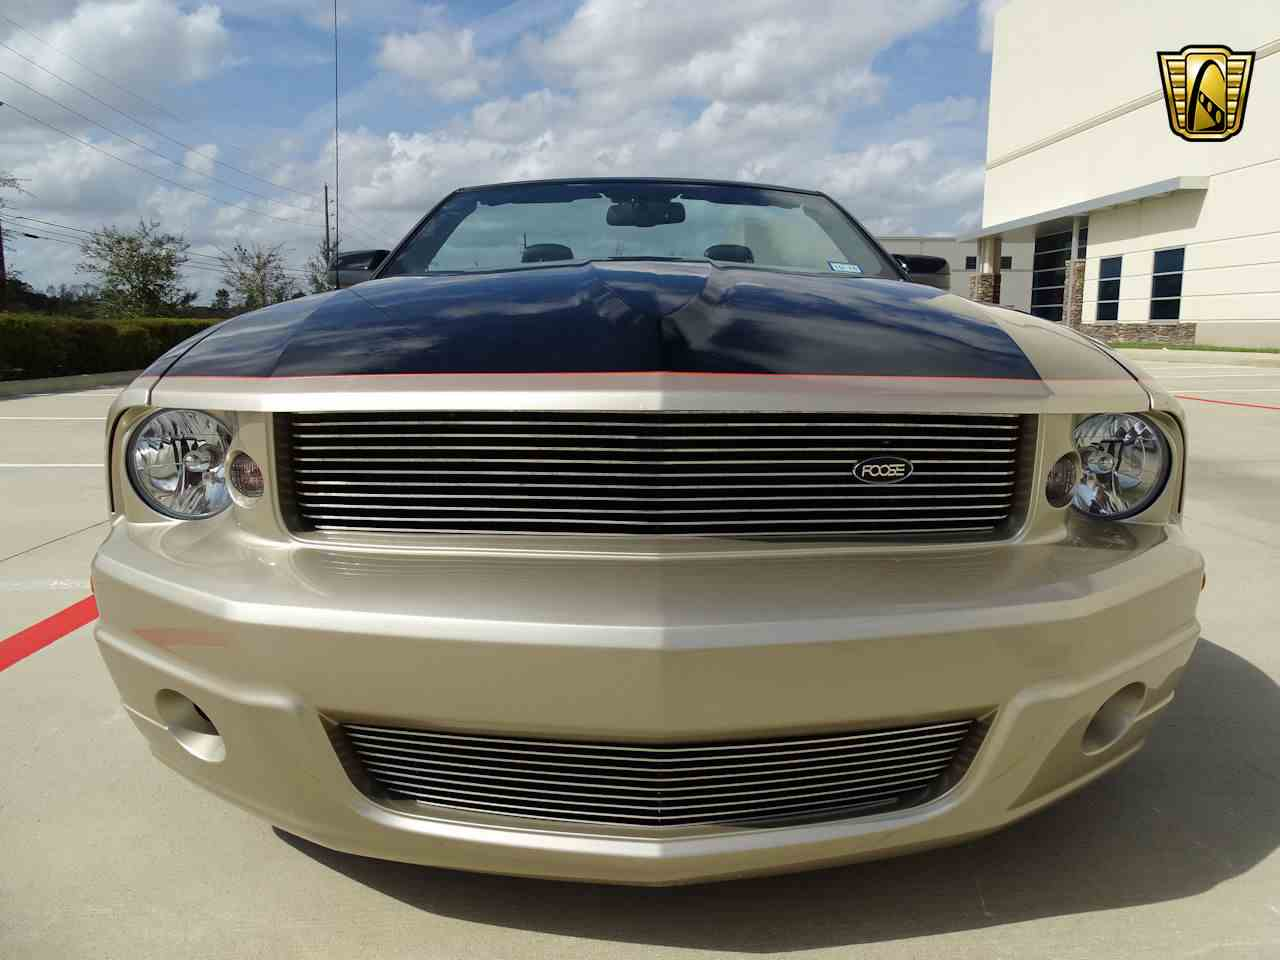 Large Picture of '08 Mustang located in Texas - $39,995.00 - MZGA